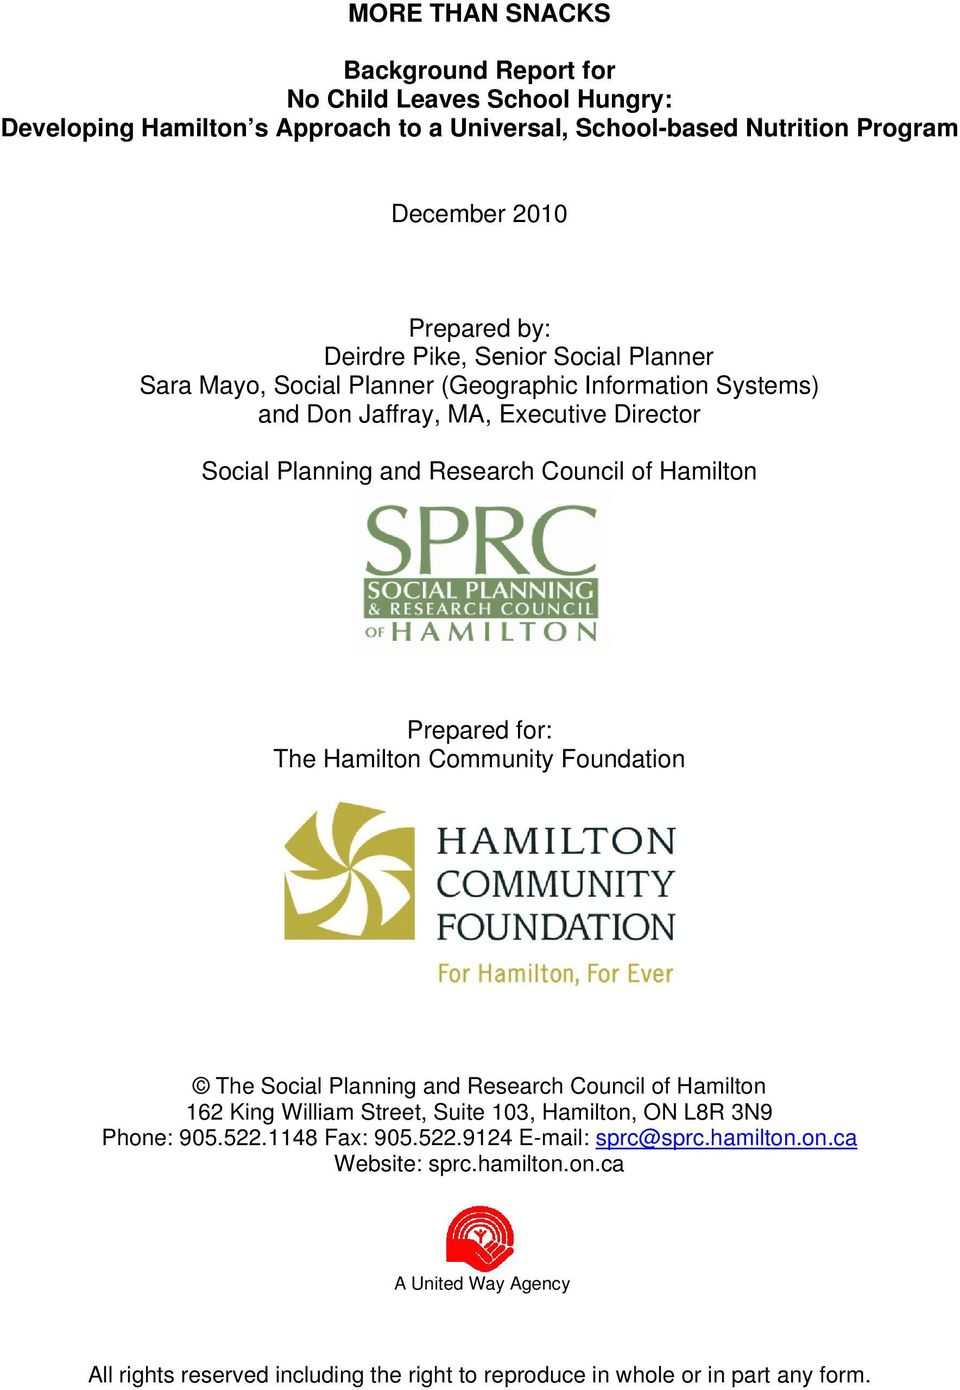 Prepared for: The Hamilton Community Foundation The Social Planning and Research Council of Hamilton 162 King William Street, Suite 103, Hamilton, ON L8R 3N9 Phone: 905.522.